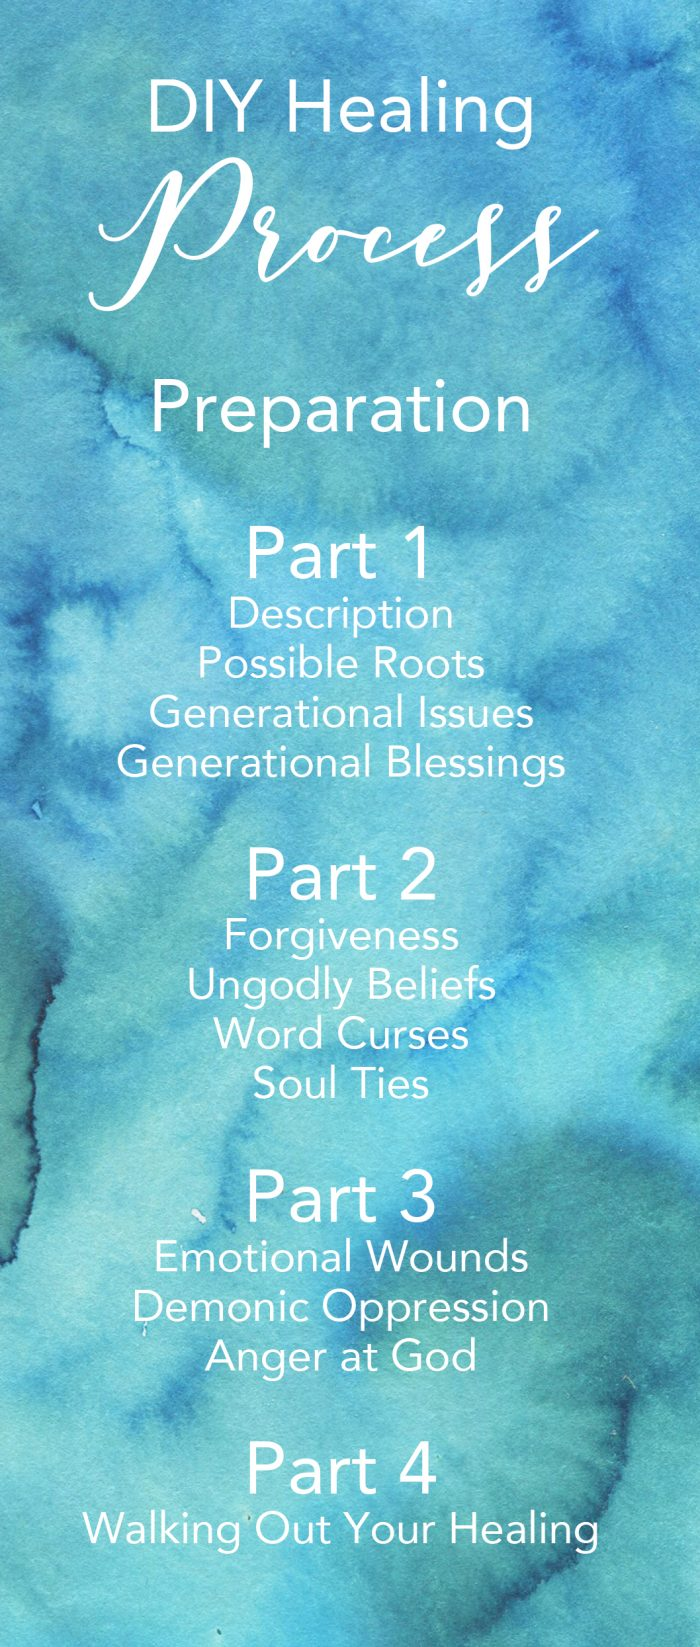 Process for targeted issue blog posts on DIY healing